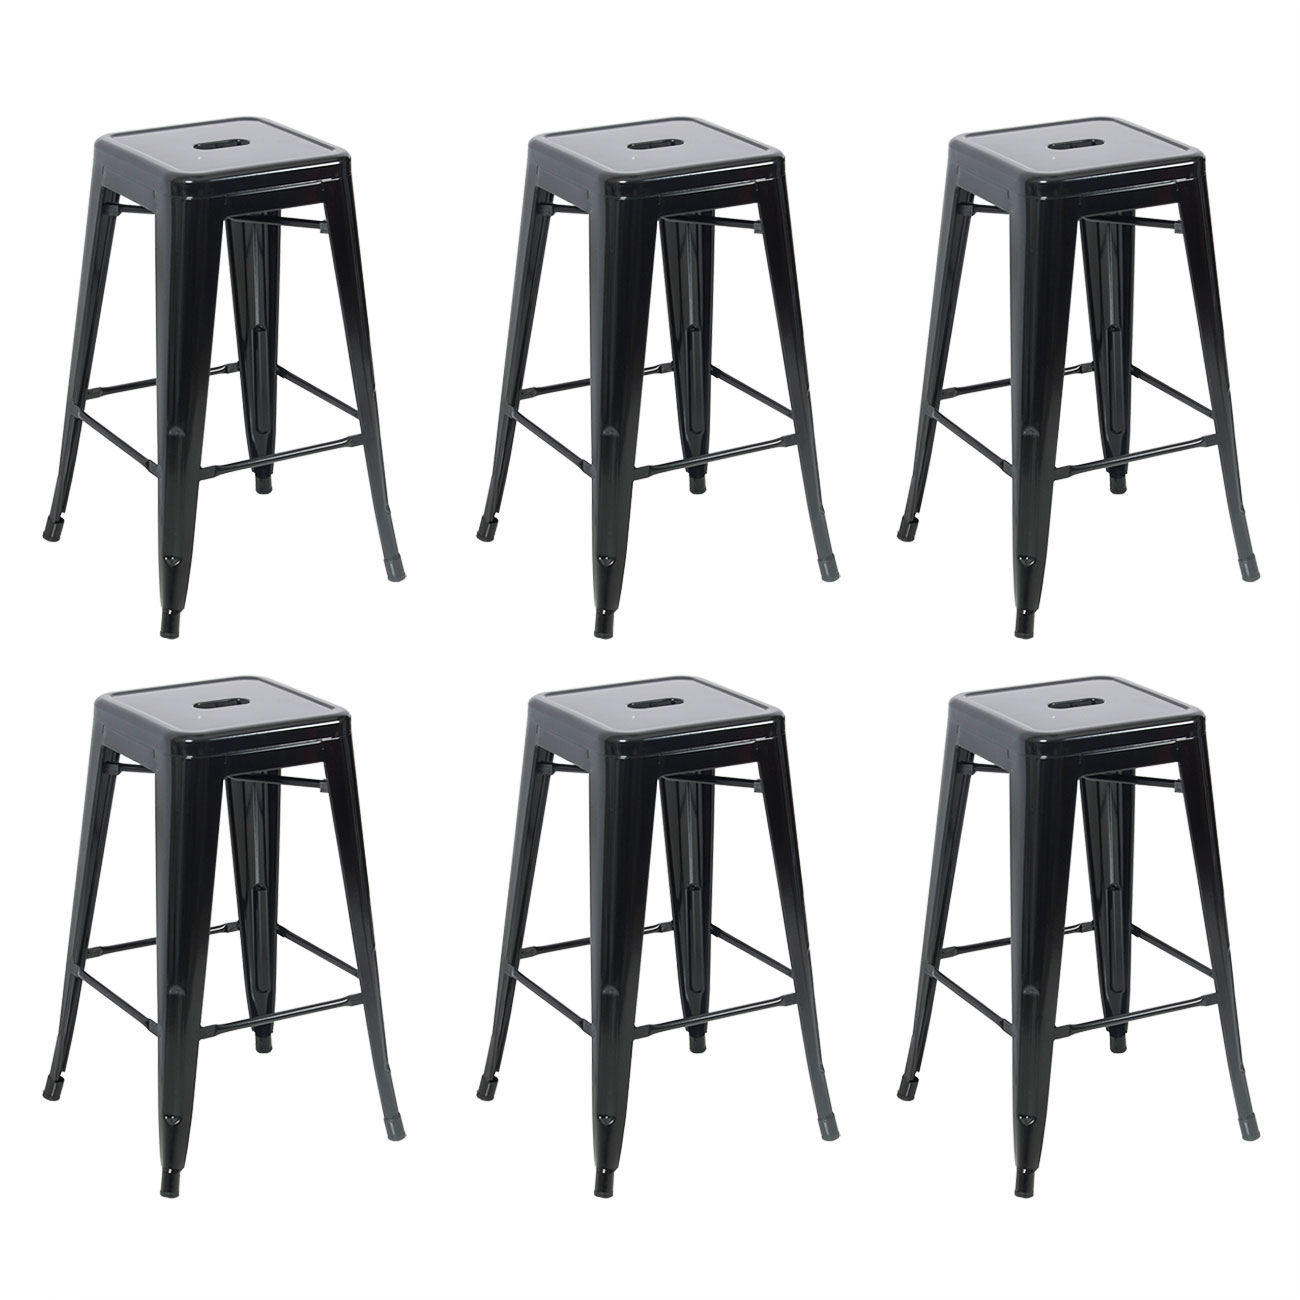 Antique Bar Stools ~ Metal bar stools set of vintage antique style counter